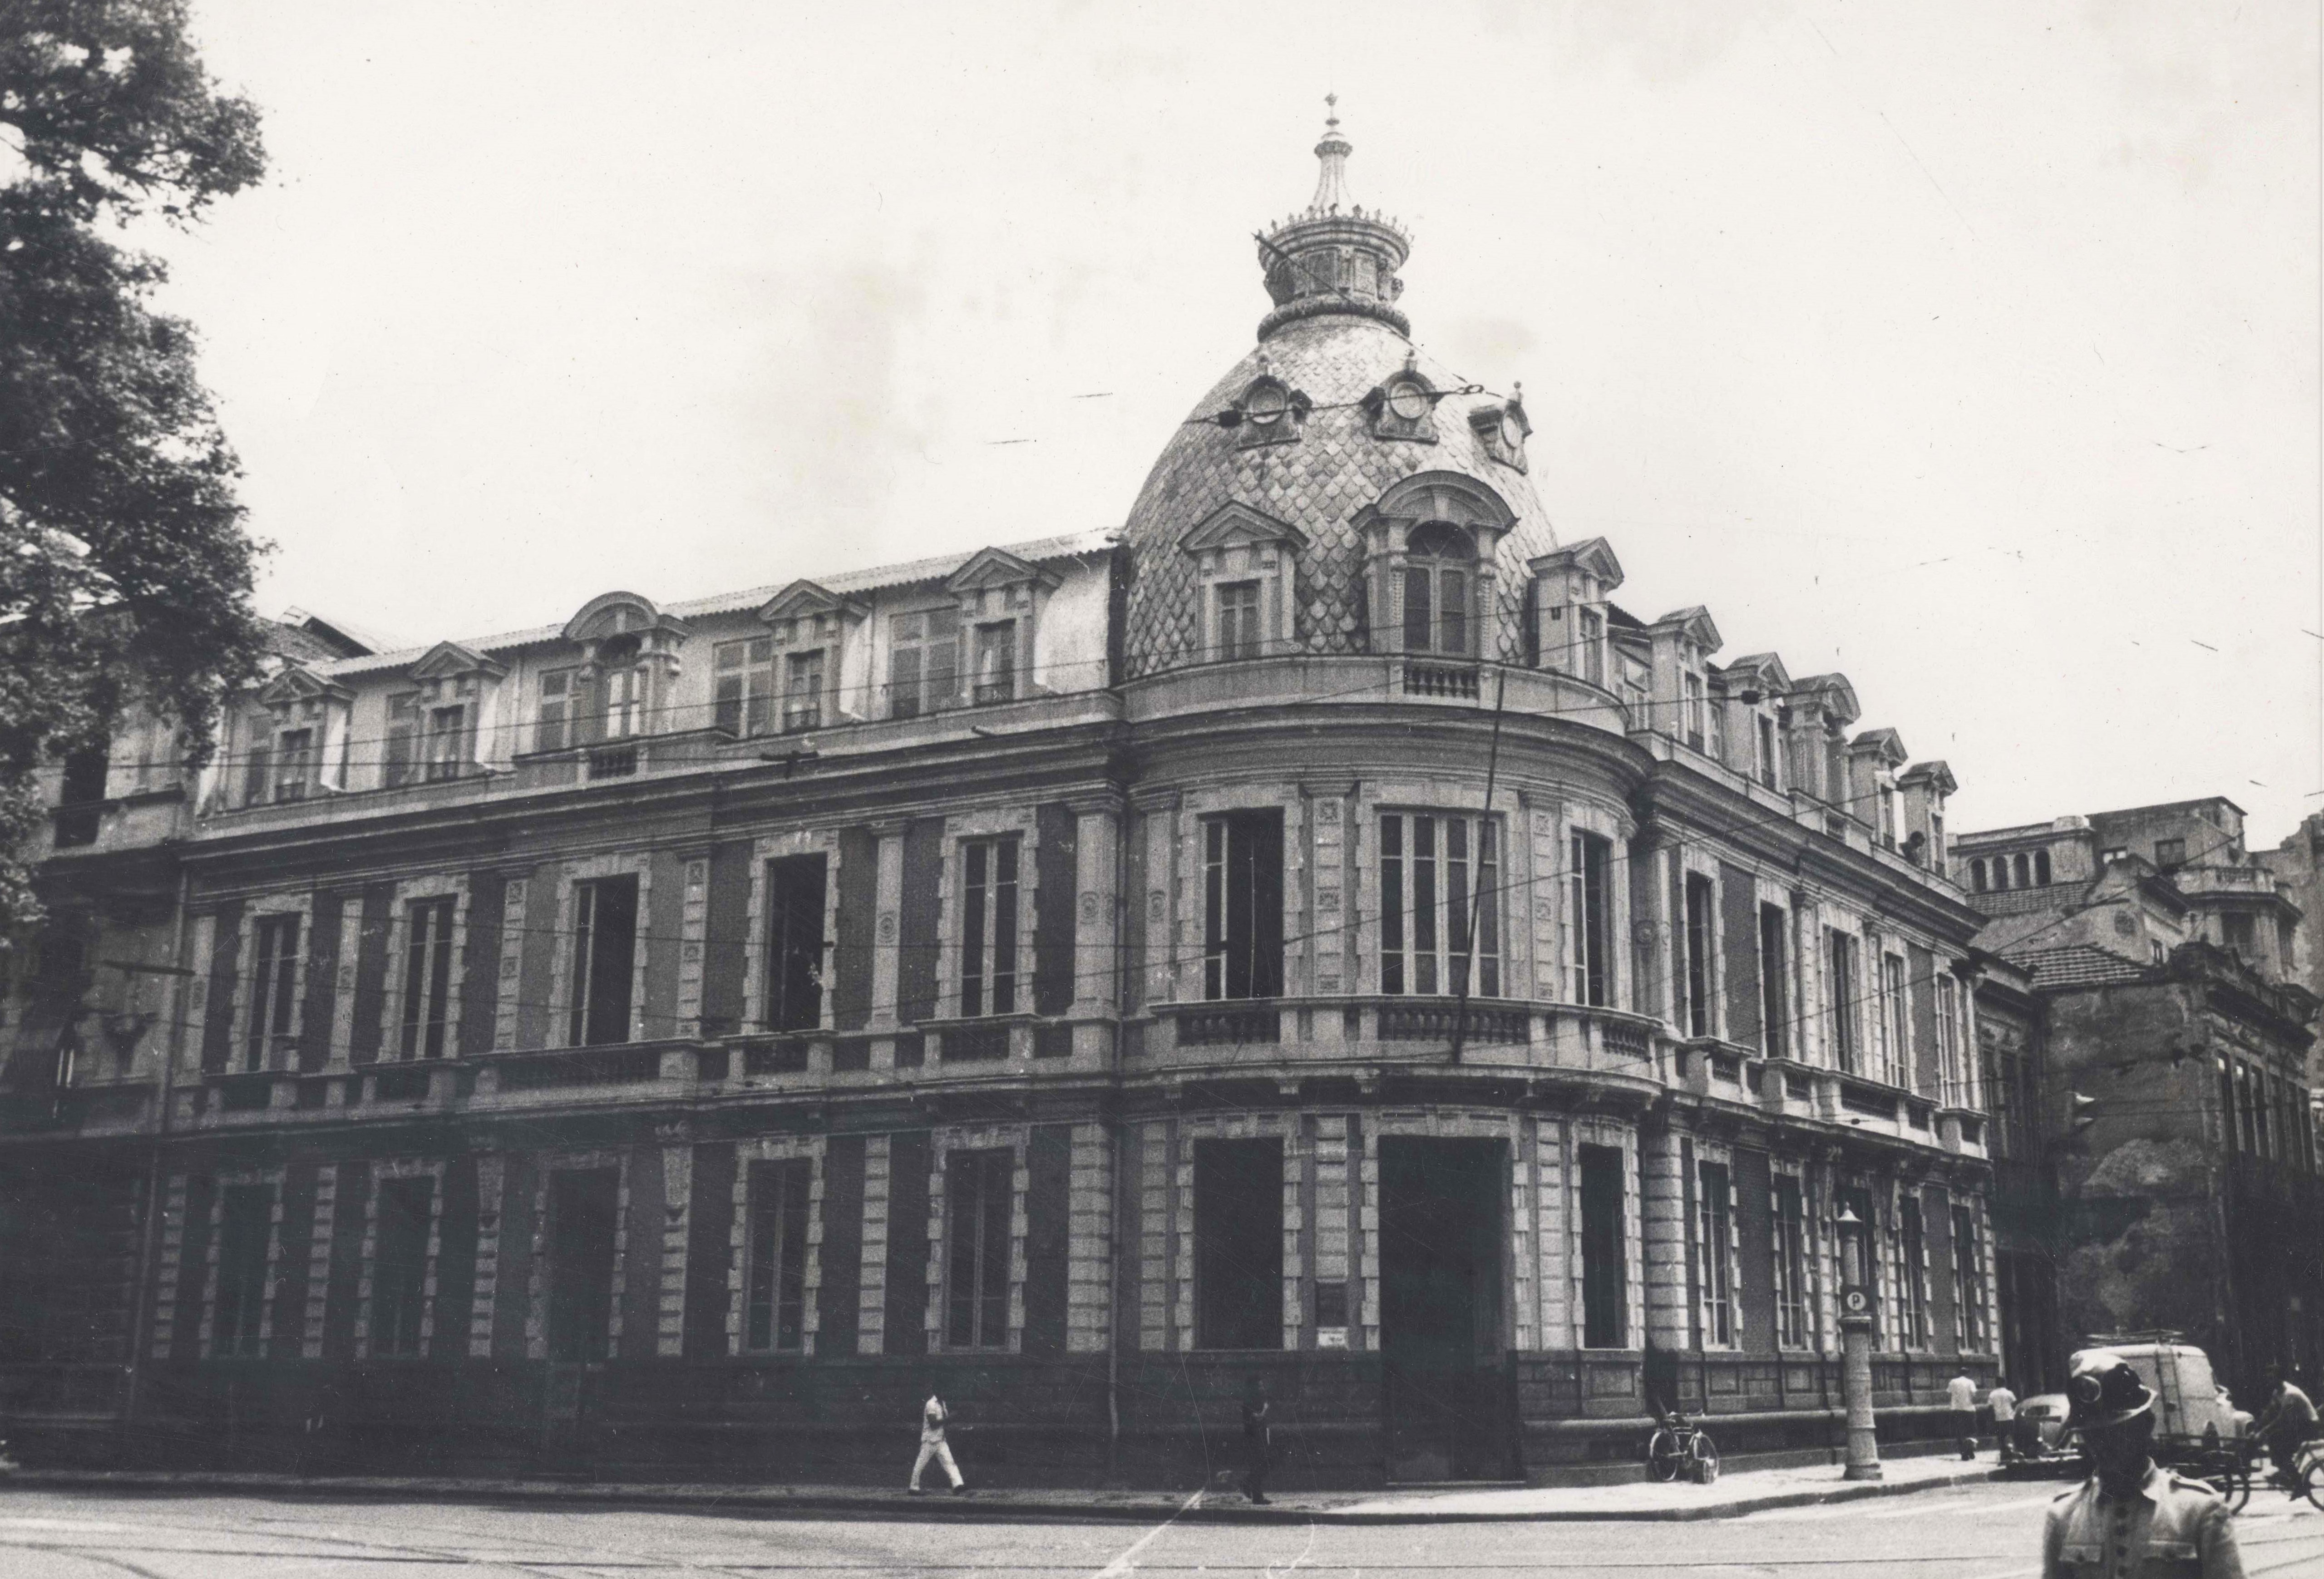 INSTITUTO DE ELETROTCNICA ANOS 60 edt